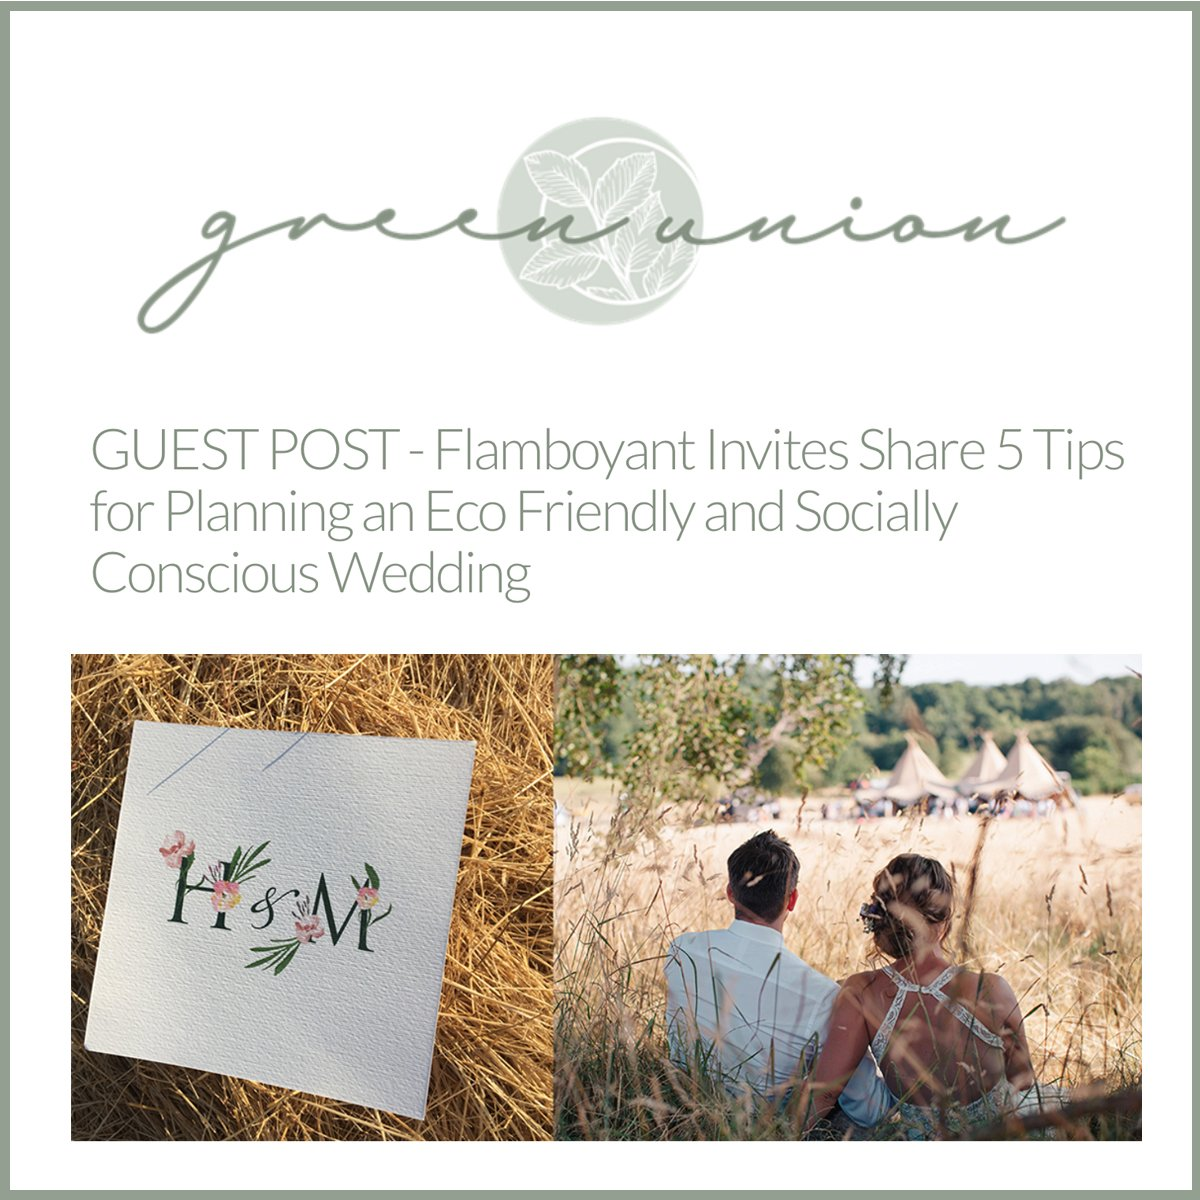 Surrey Wedding Stationery Design Tips on Creating a Stand Out Wedding that Makes a Difference Too